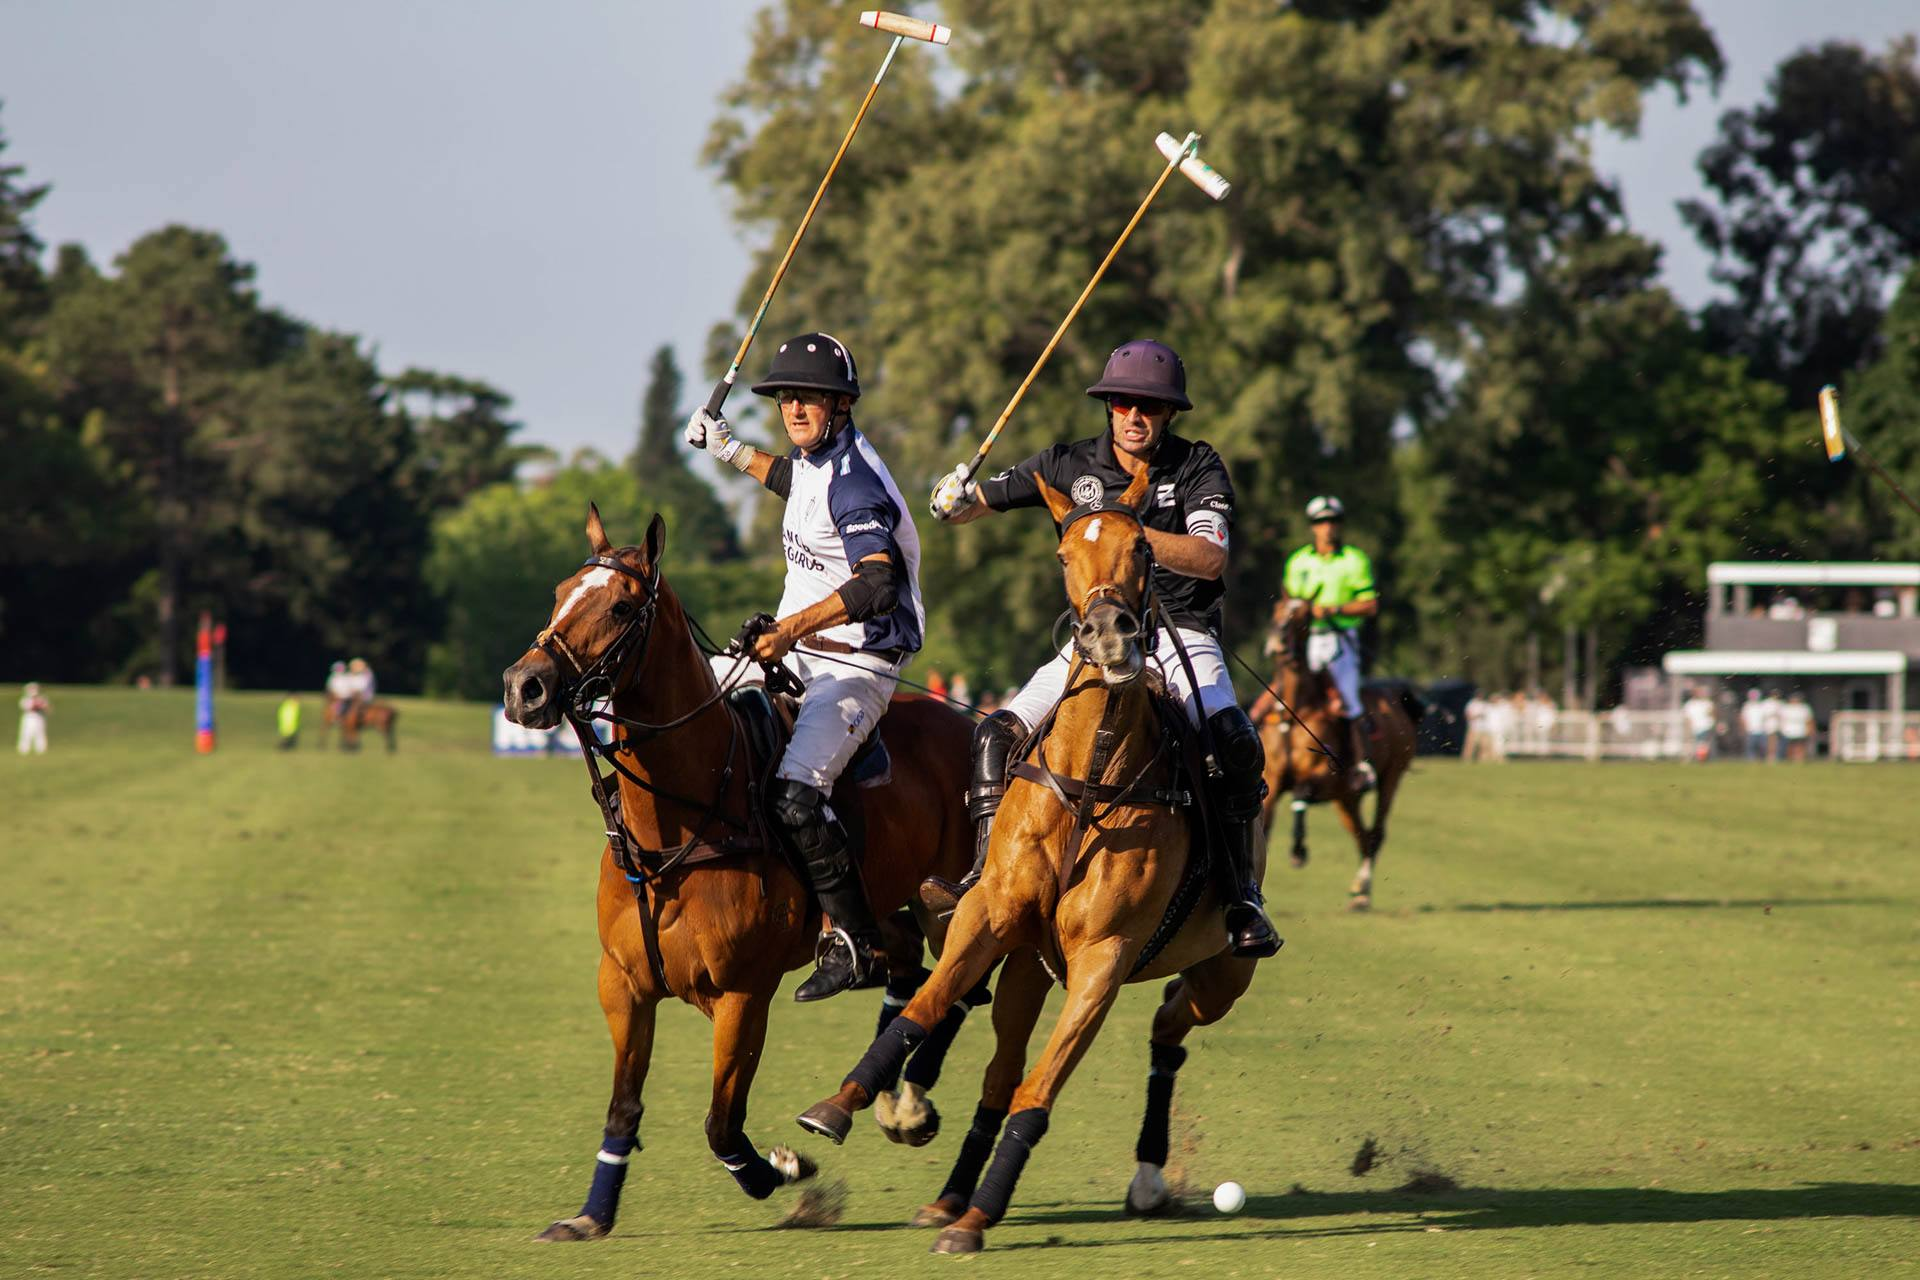 Hurlingham Club Polo